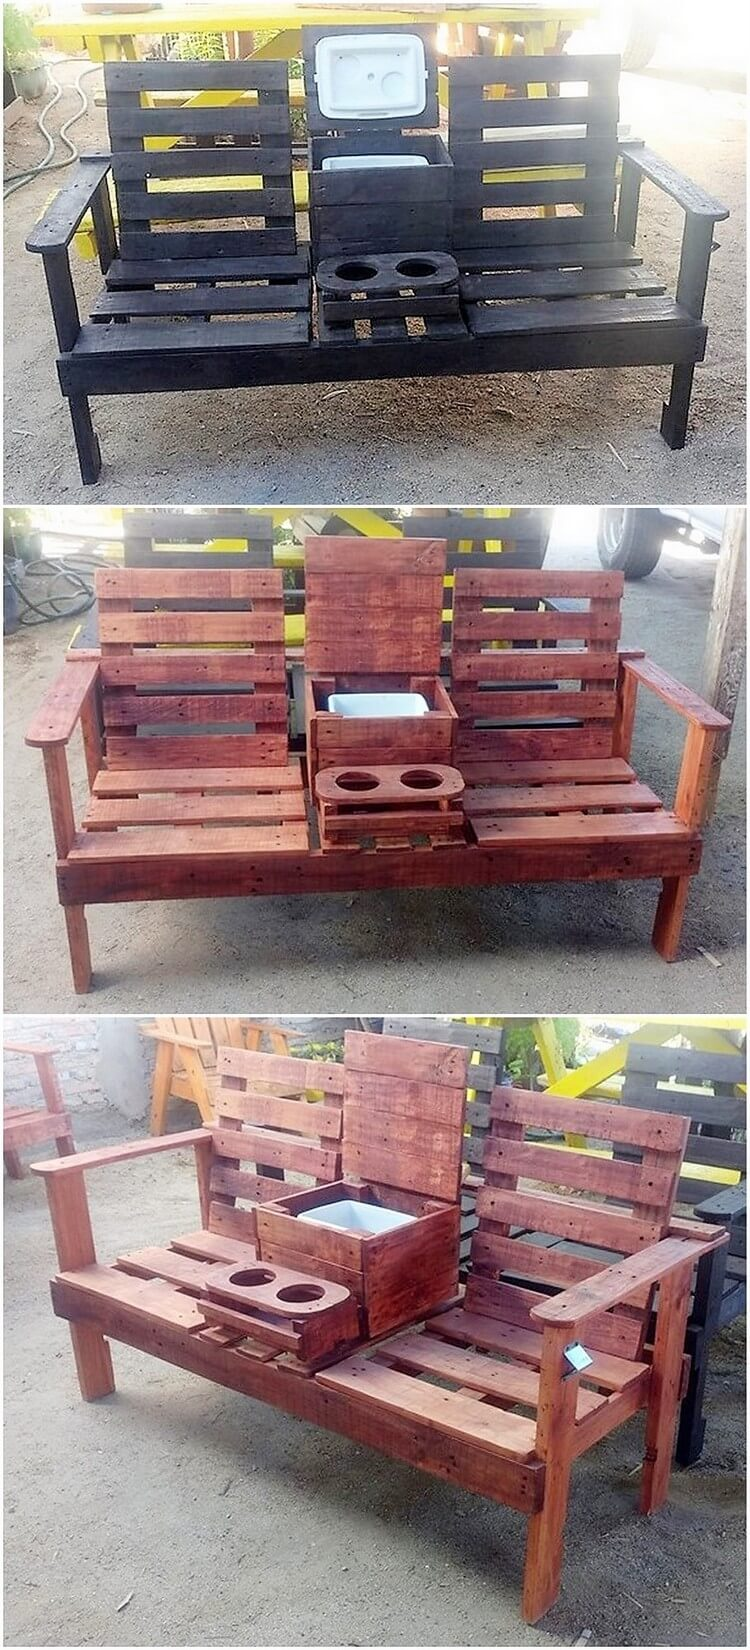 Pallet Bench or Attached Chairs